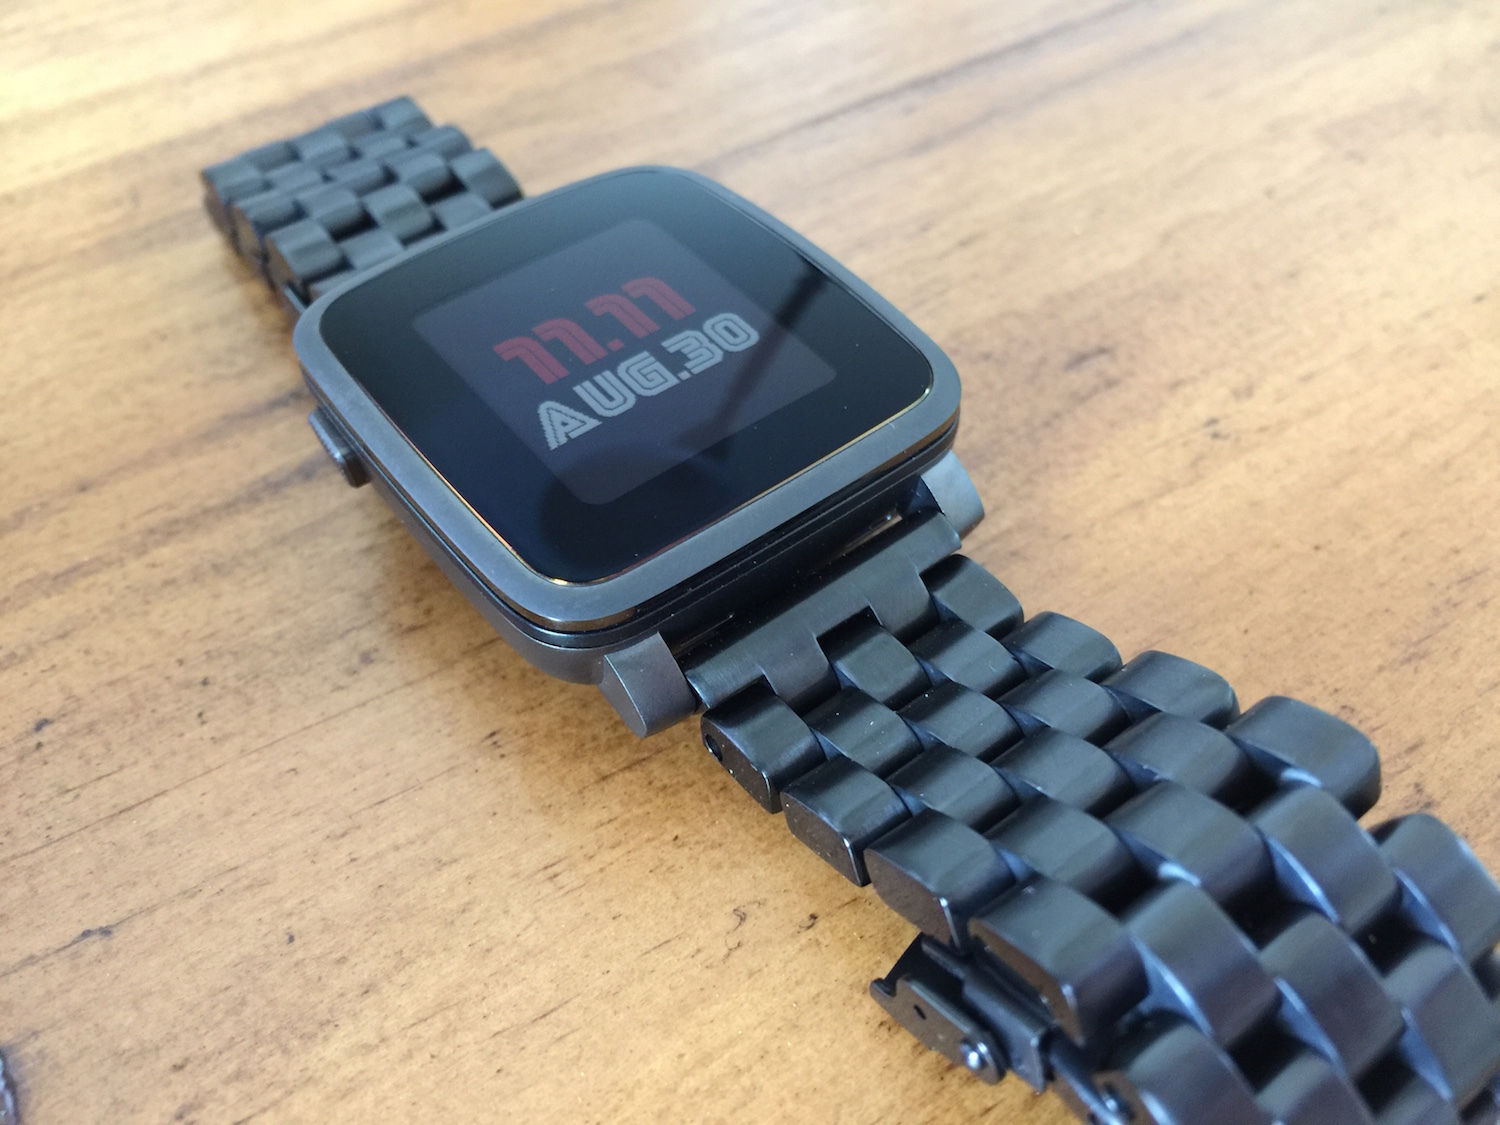 Pebble Steel review: at last, a stylish smartwatch - Engadget